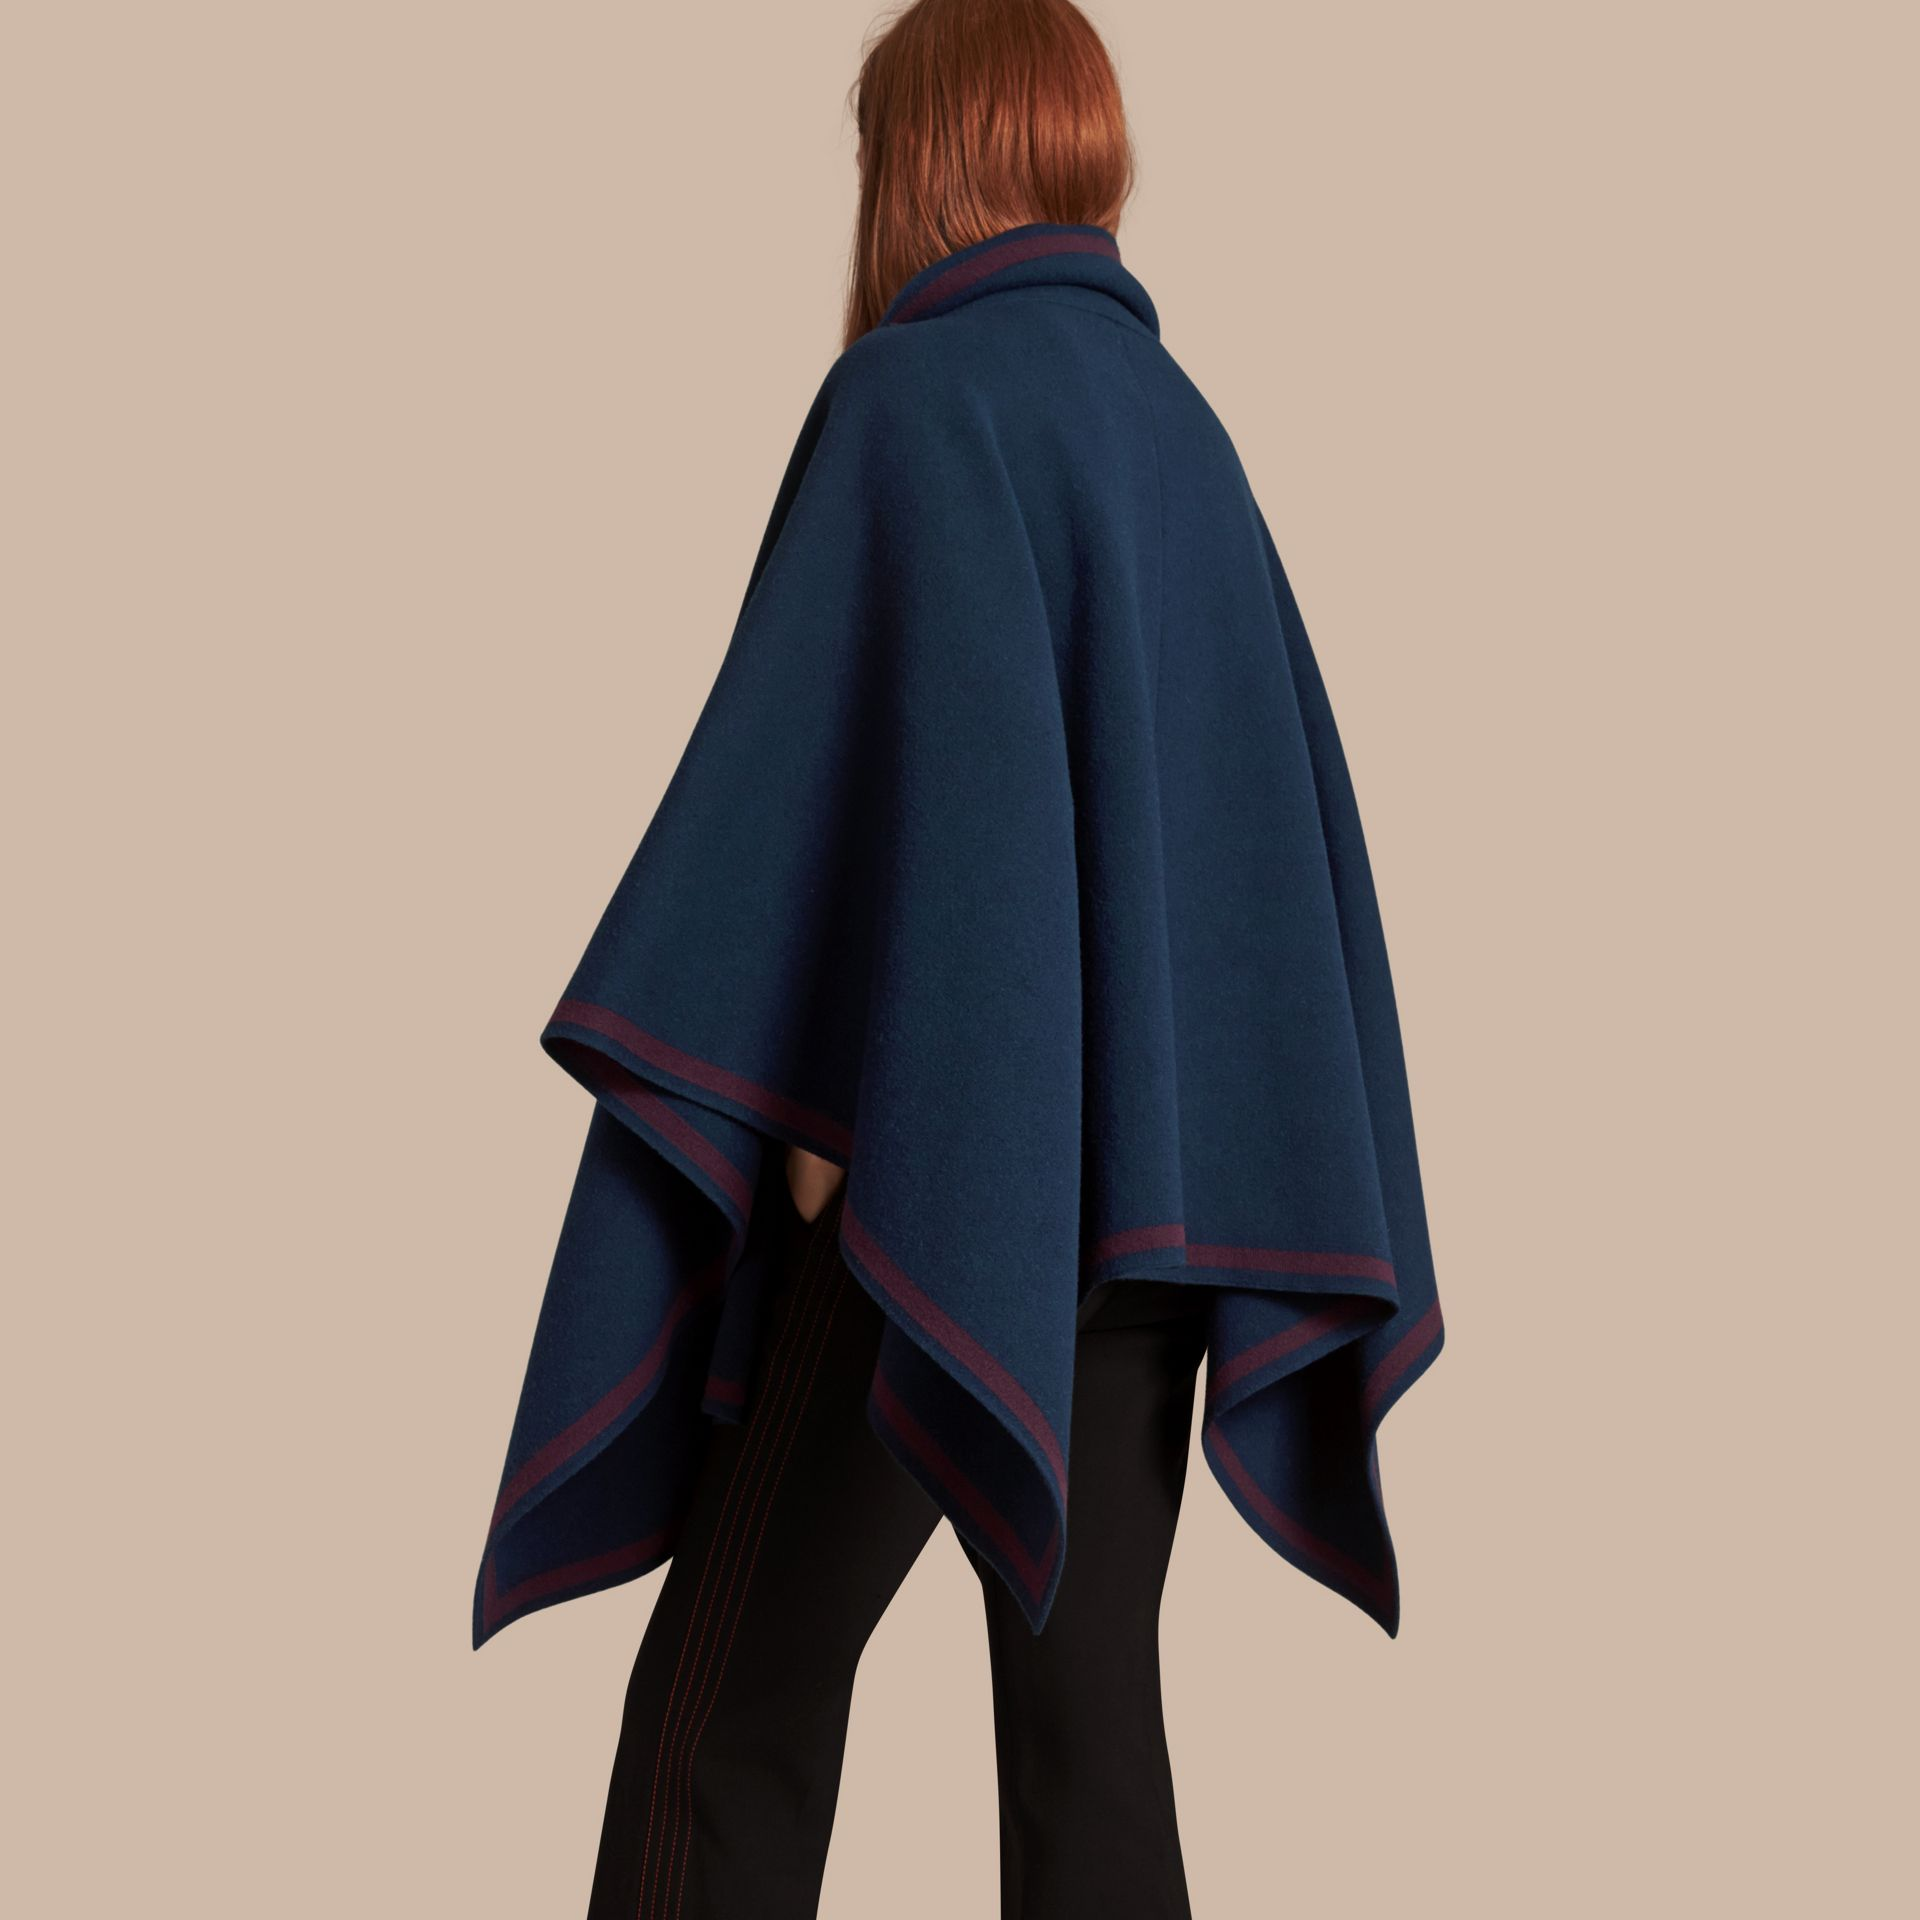 Ink blue/burgundy Wool Cashmere Blend Poncho Ink Blue/burgundy - gallery image 3